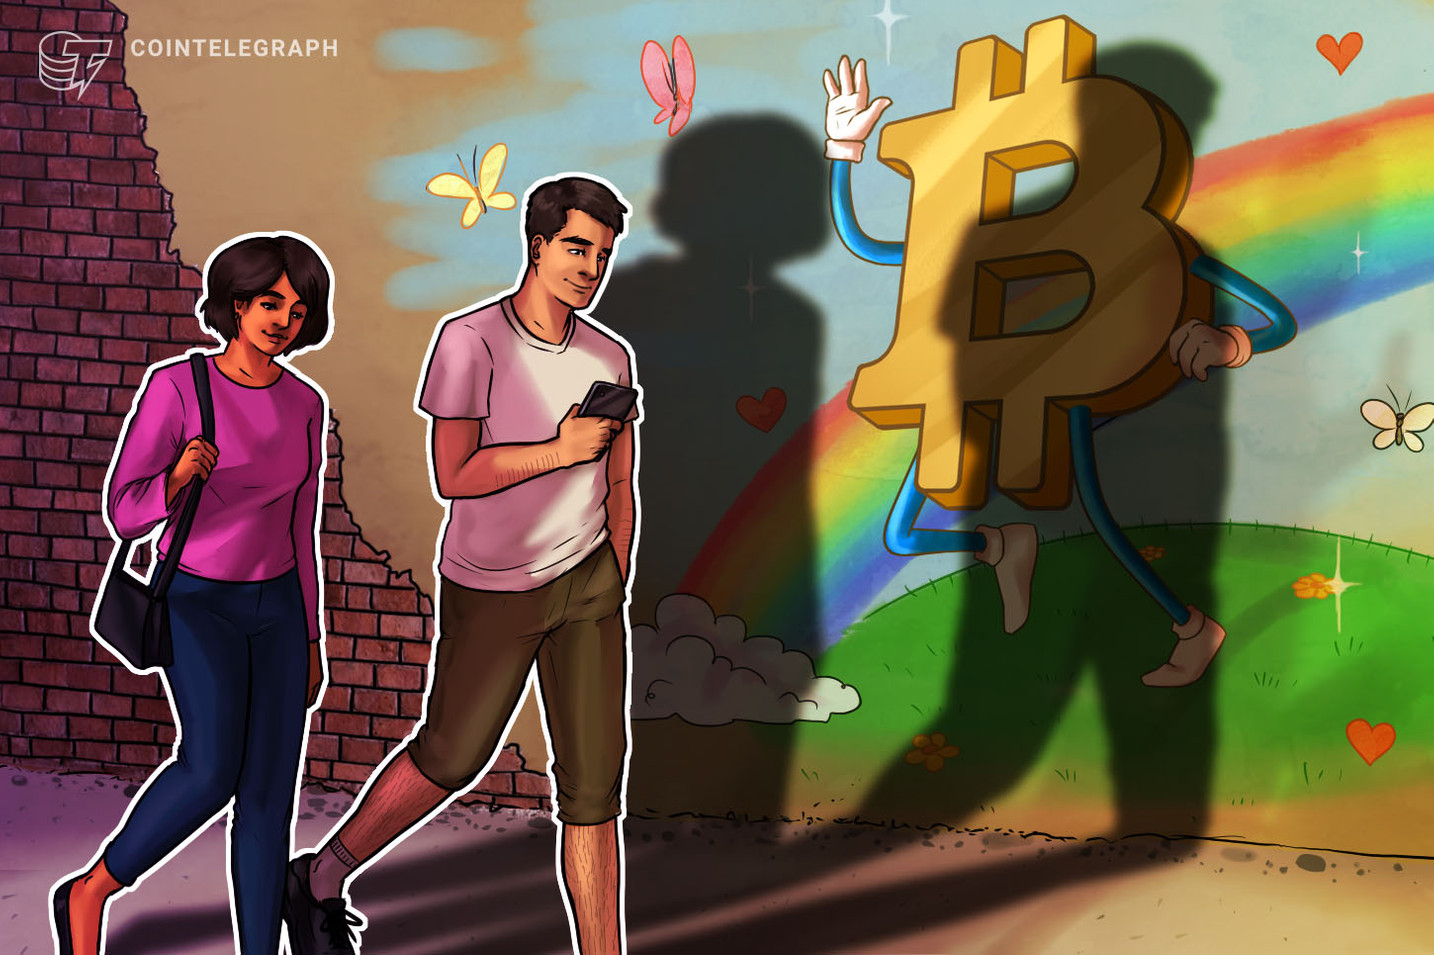 A New Guerrilla Marketing Campaign Aims to Create Bitcoin Awareness